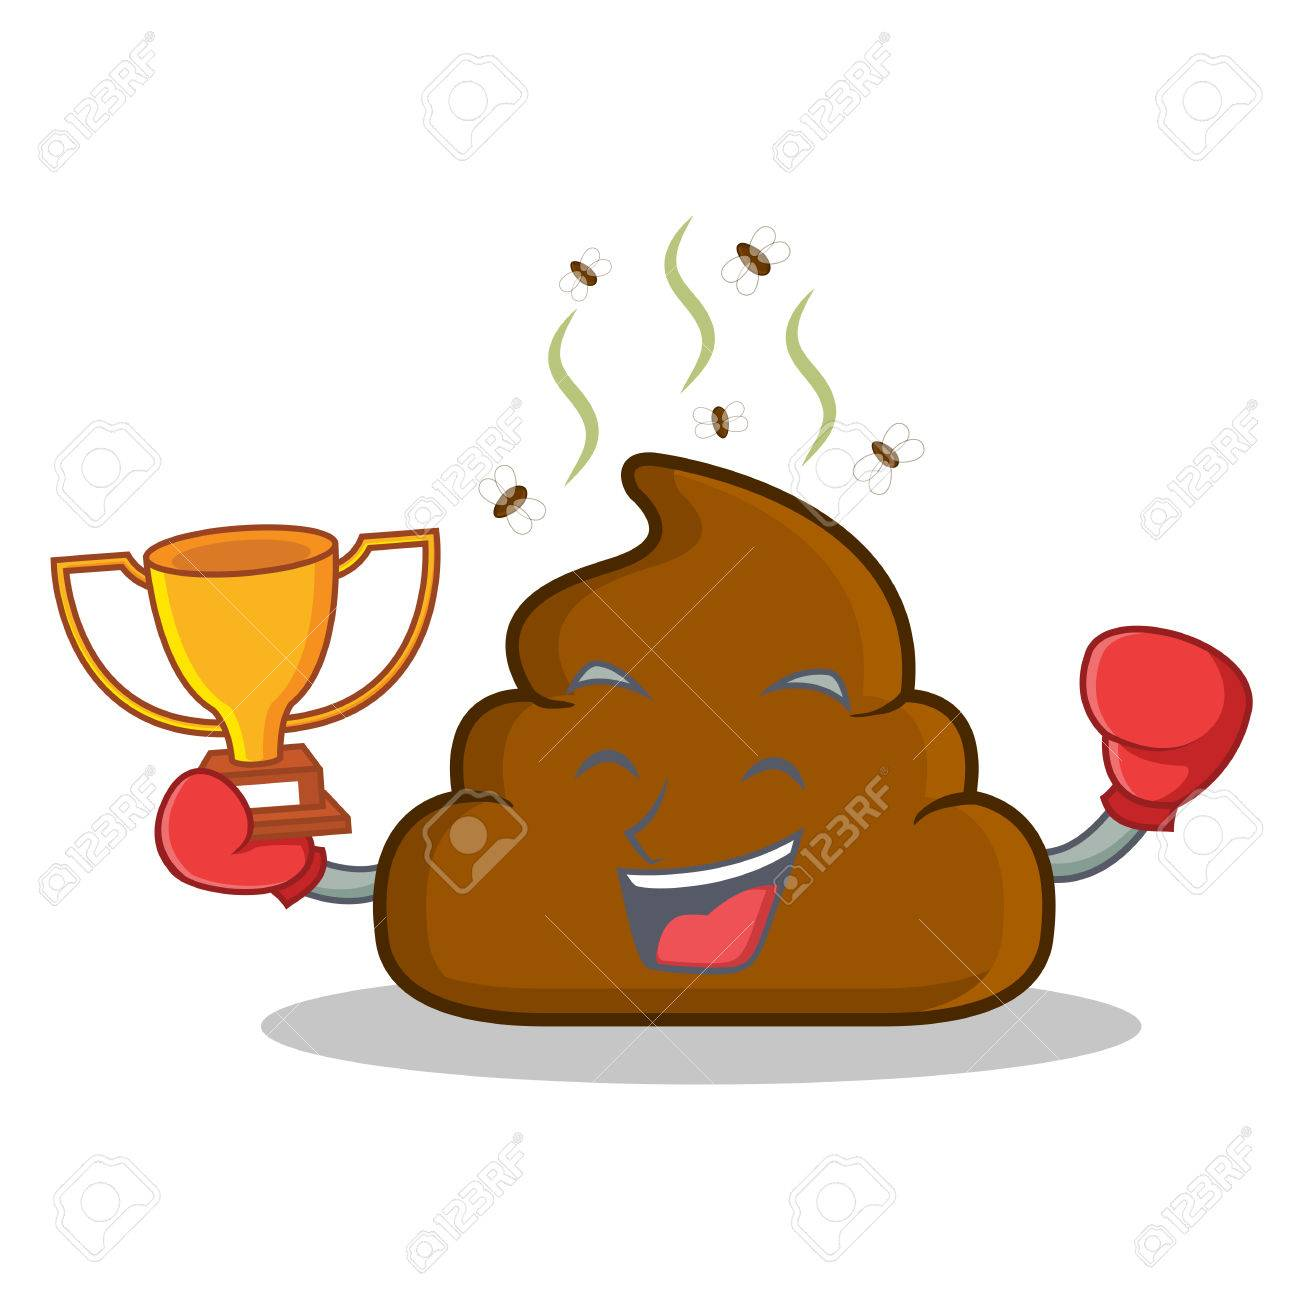 Boxing winner poop emoticon character cartoon royalty free boxing winner poop emoticon character cartoon stock vector 84515745 voltagebd Gallery